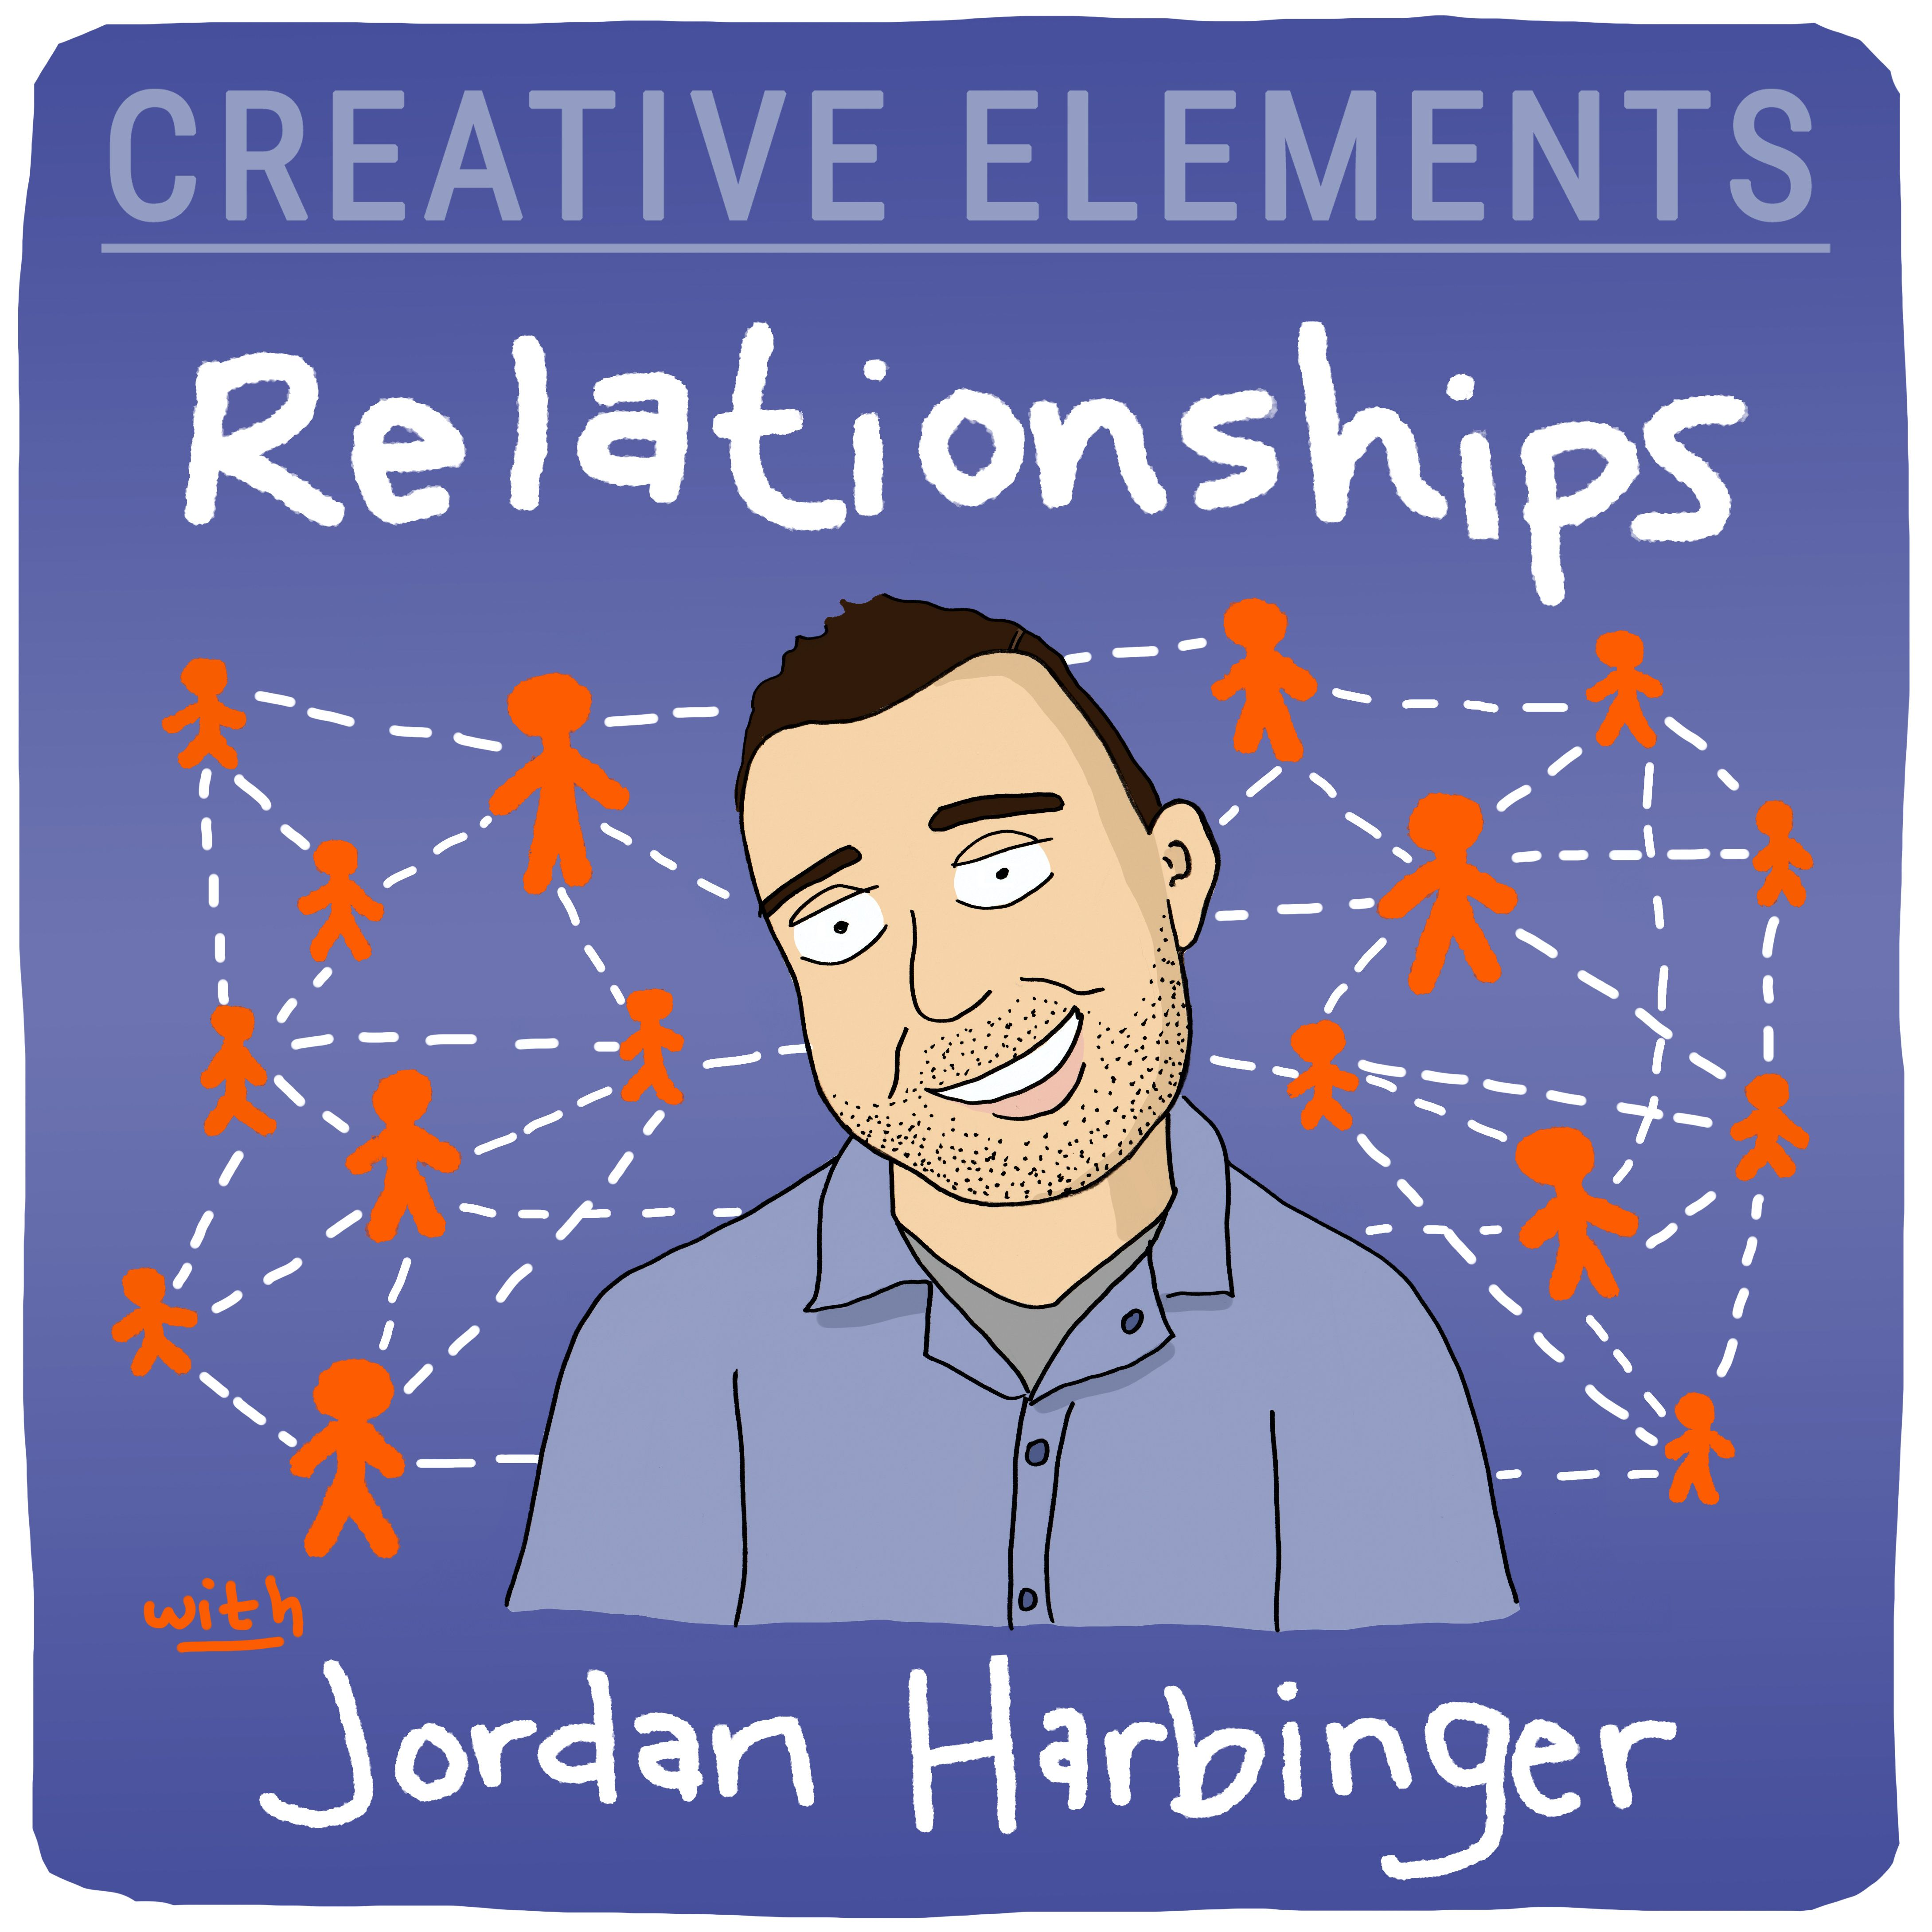 #44: Jordan Harbinger [Relationships]